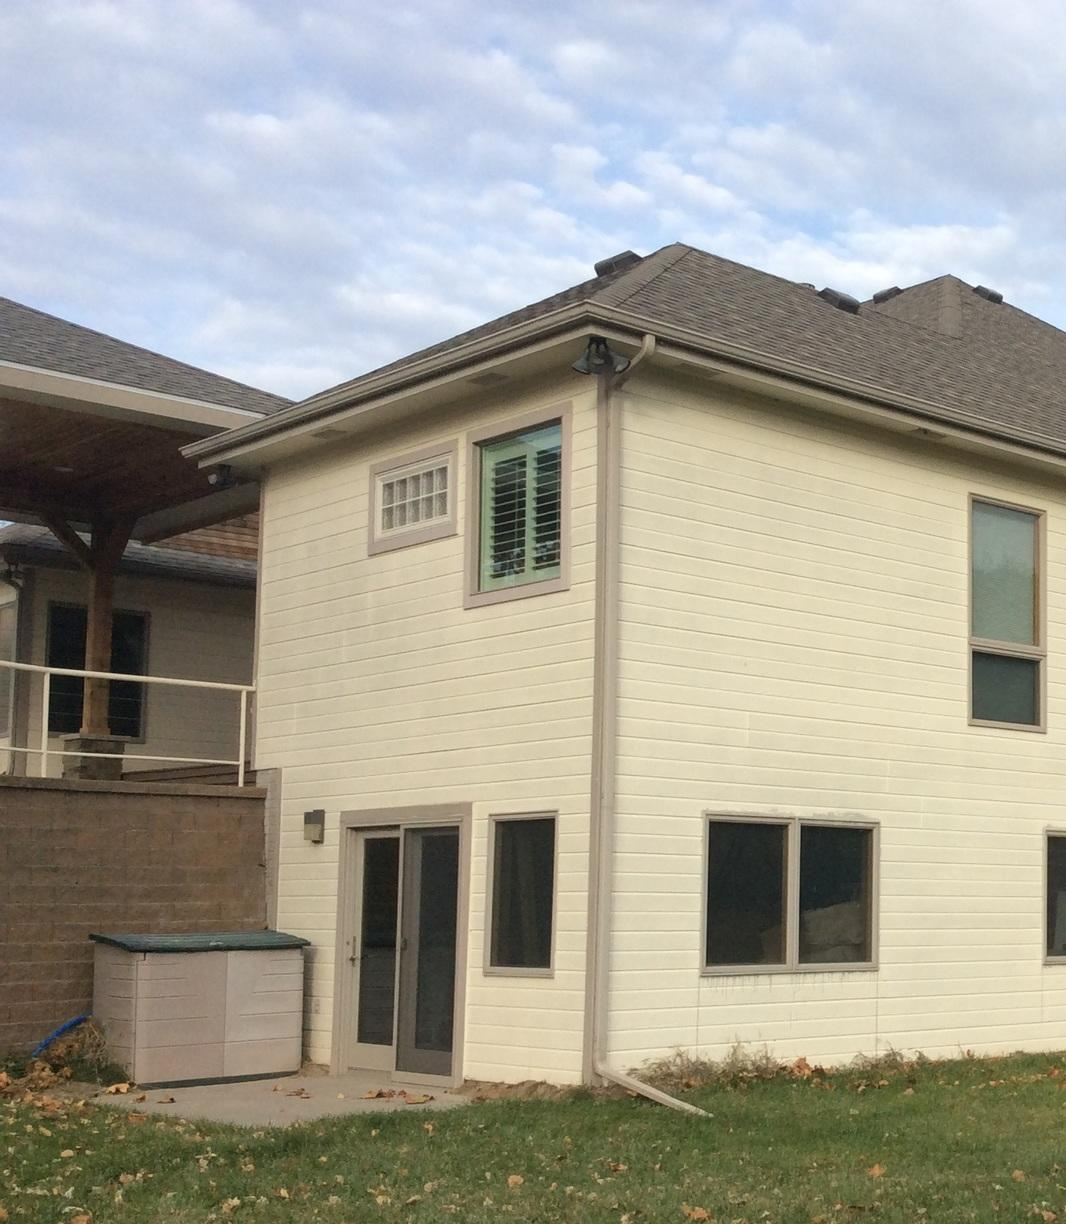 Rain Gutter Installation in Council Bluffs, IA - Before Photo